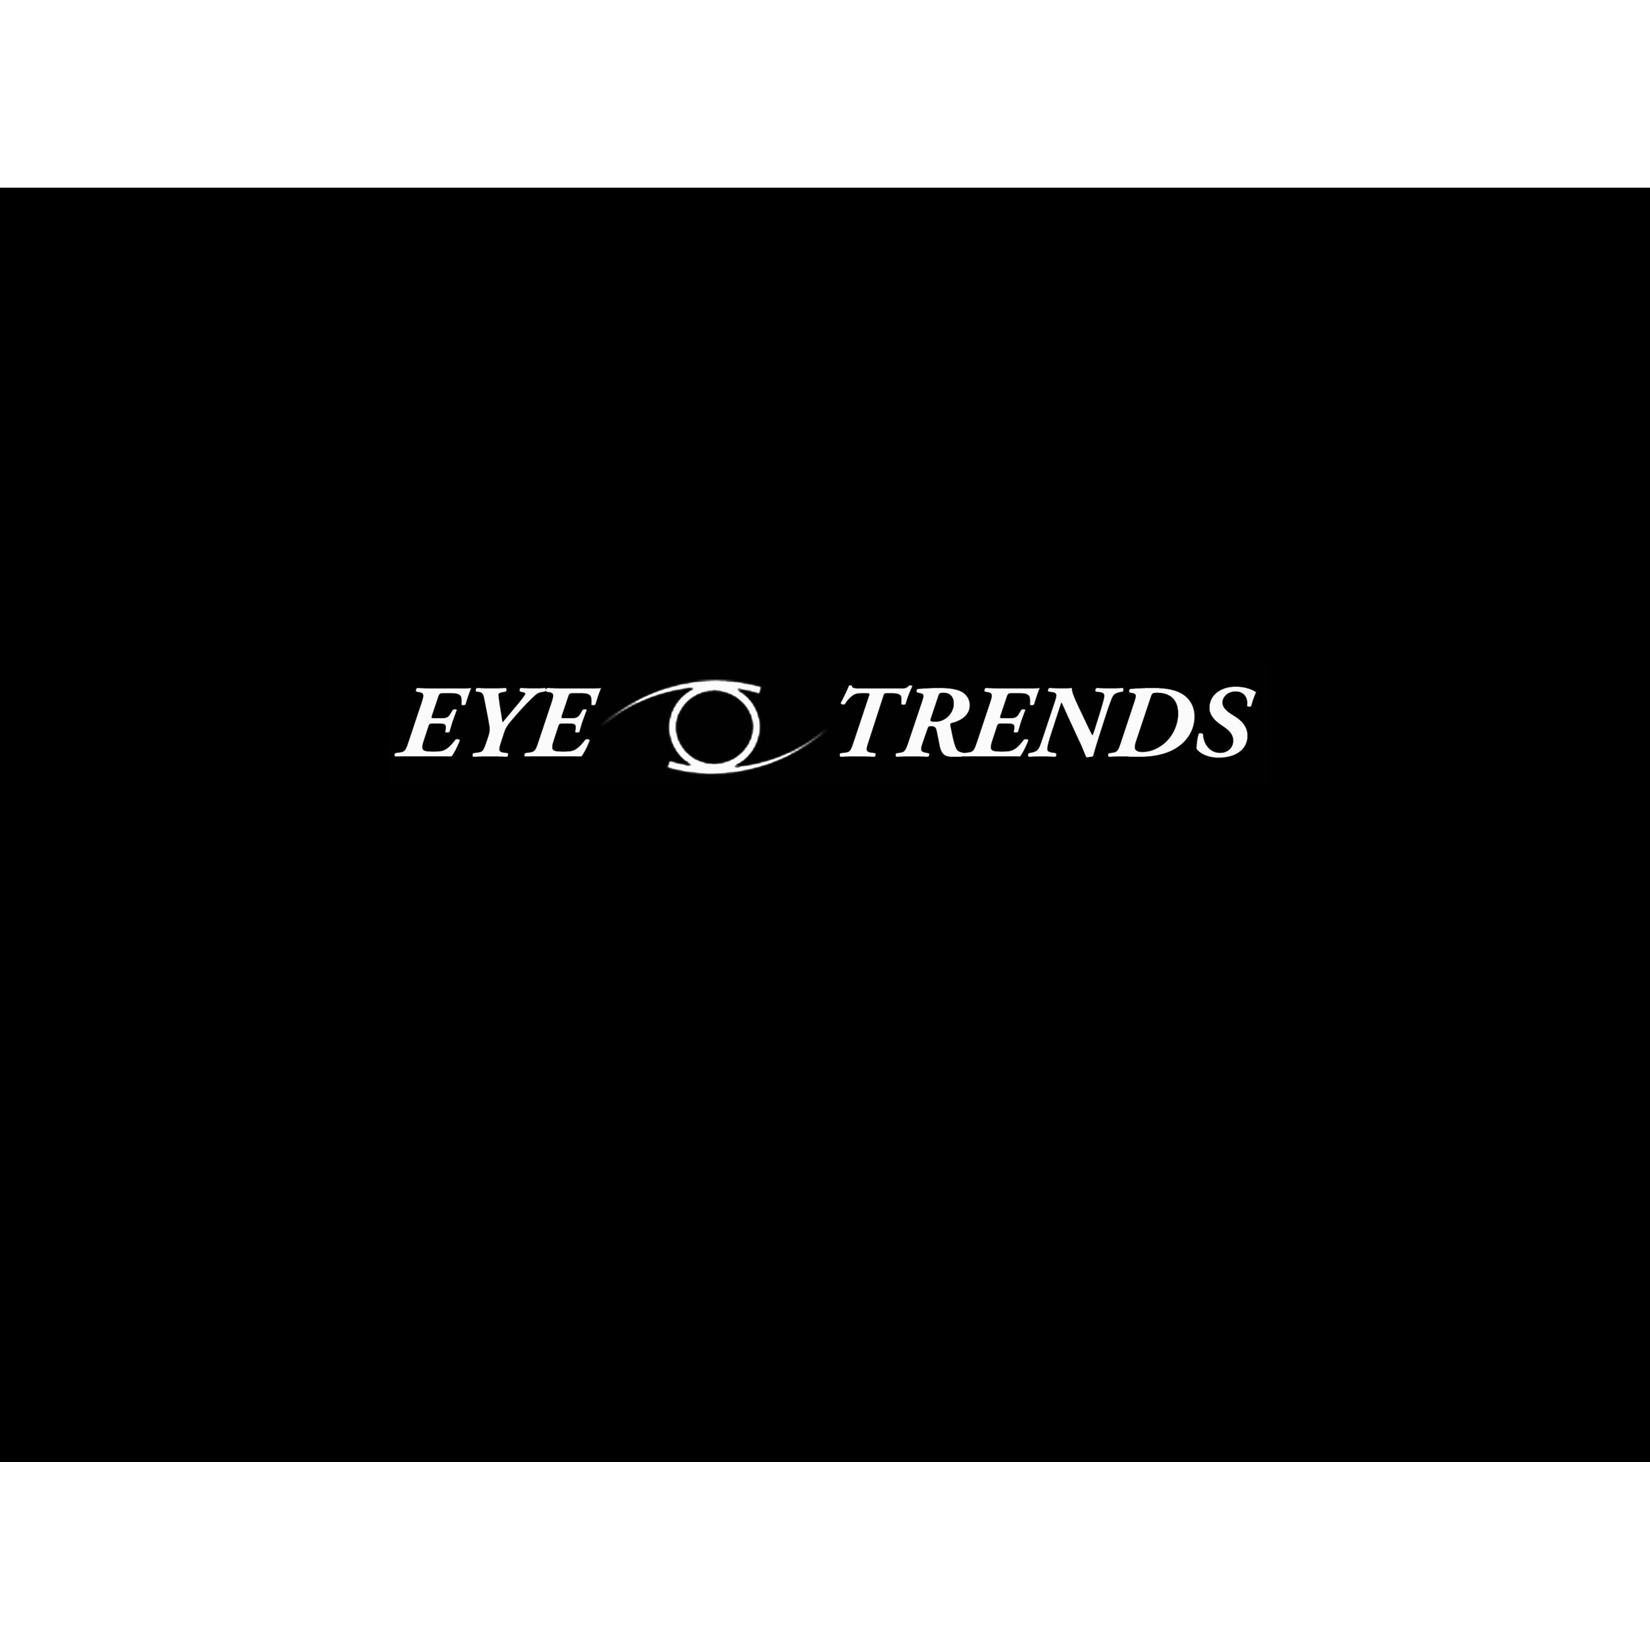 Dr. Zaibaq And Associates - Eye Trends - Houston, TX 77096 - (713)771-2020 | ShowMeLocal.com